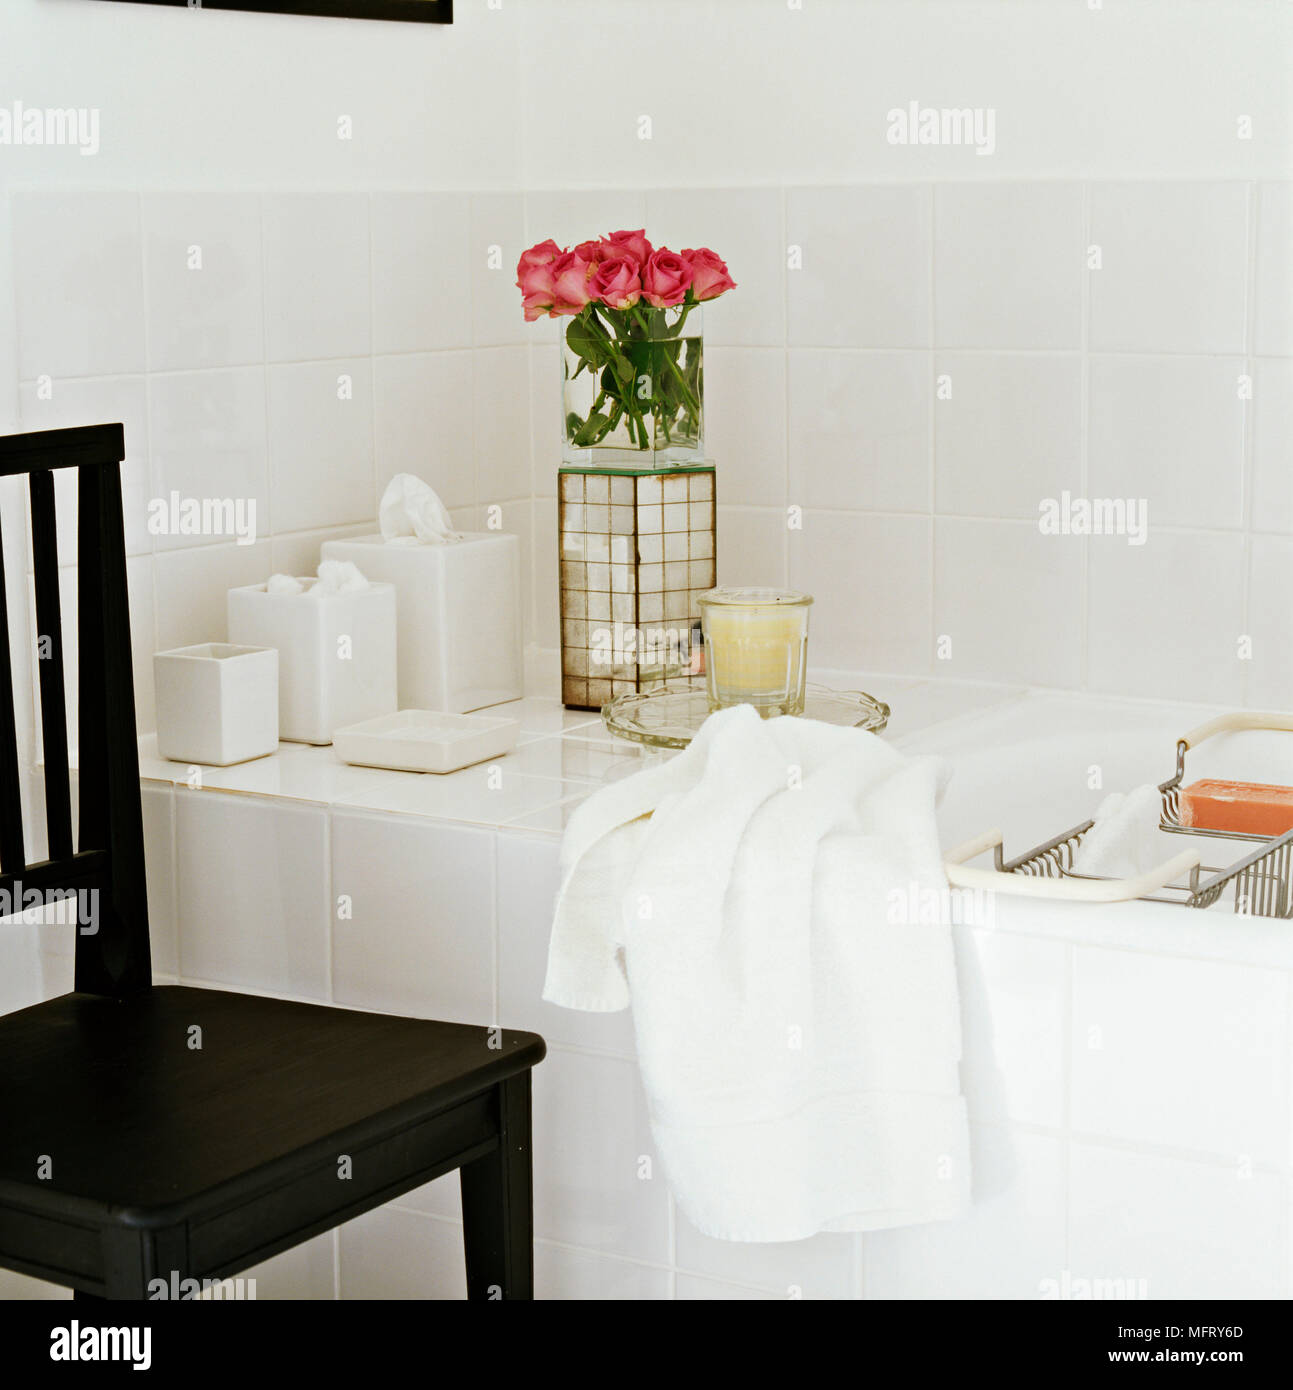 A detail of a modern white bathroom showing a bath with ceramic tile ...